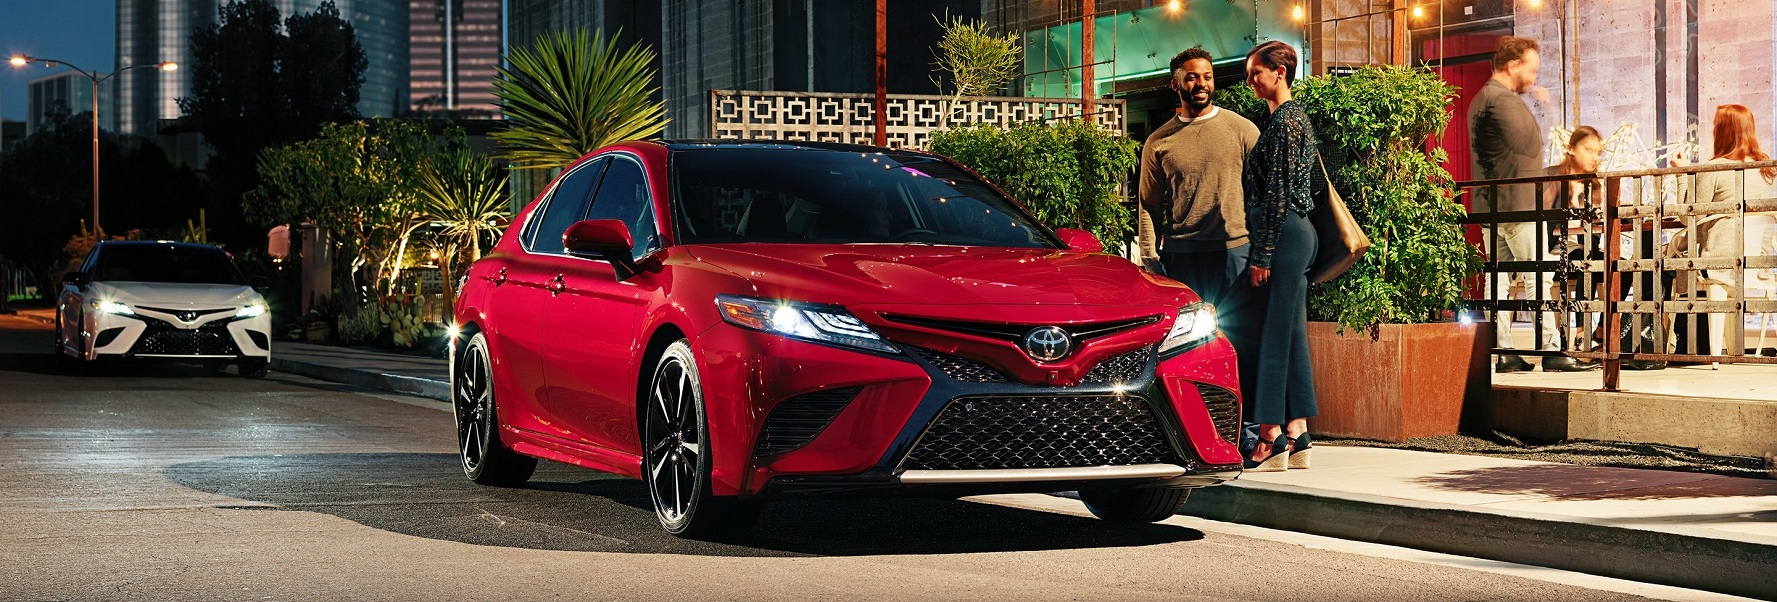 2020 Toyota Camry Financing near Cleveland, OH